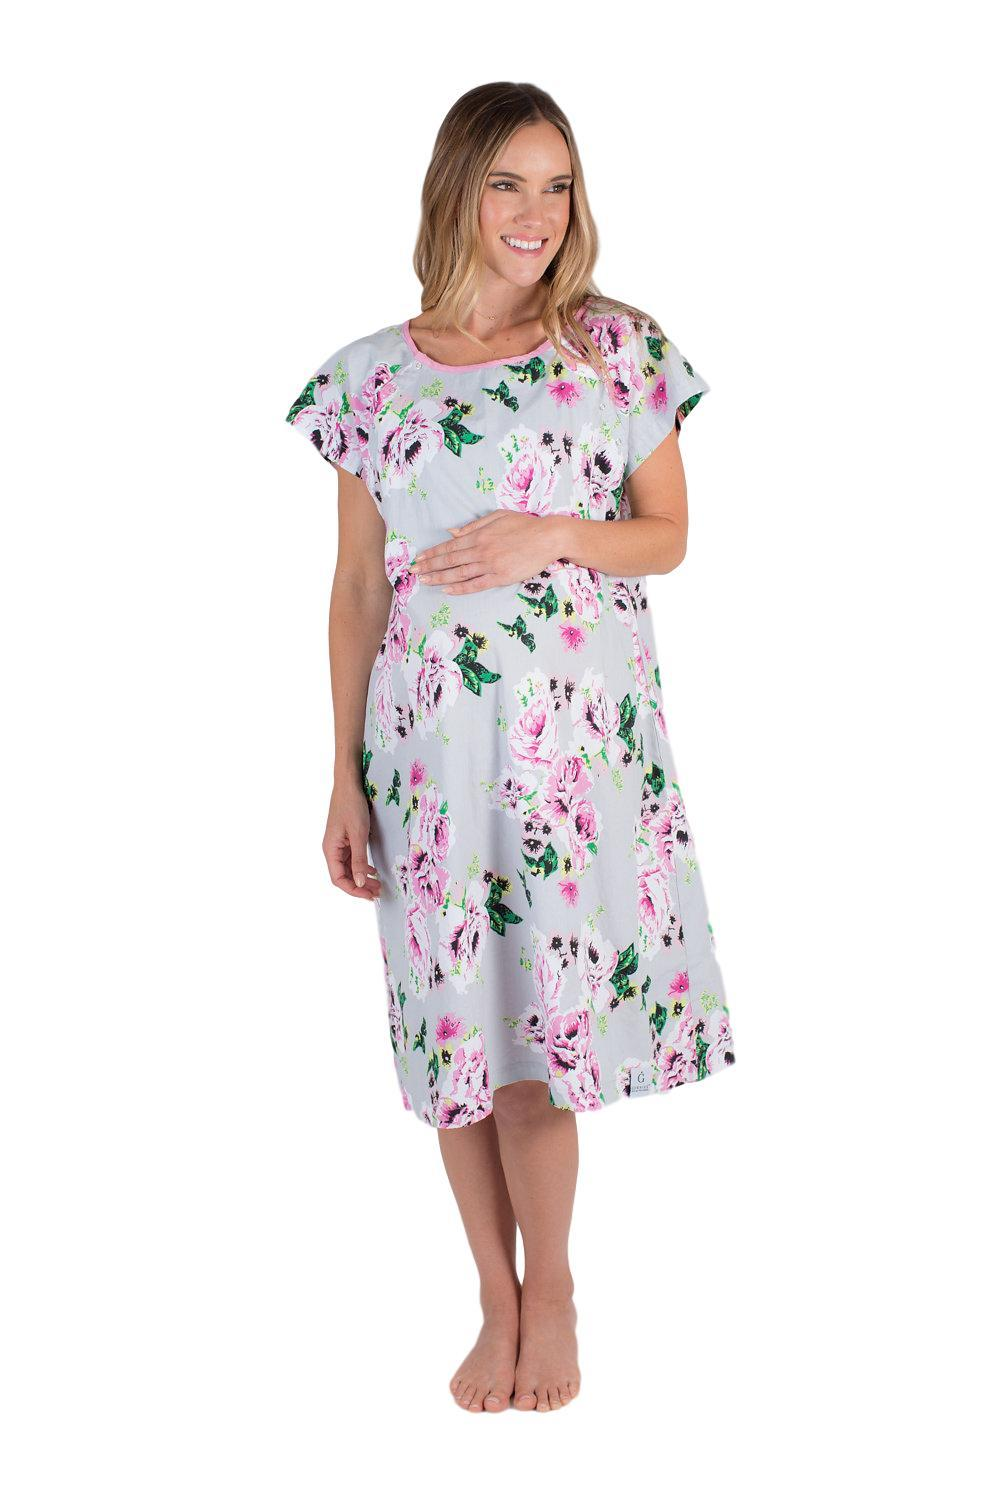 Olivia Floral Maternity Delivery Hospital Gown Gownie & Delivery ...